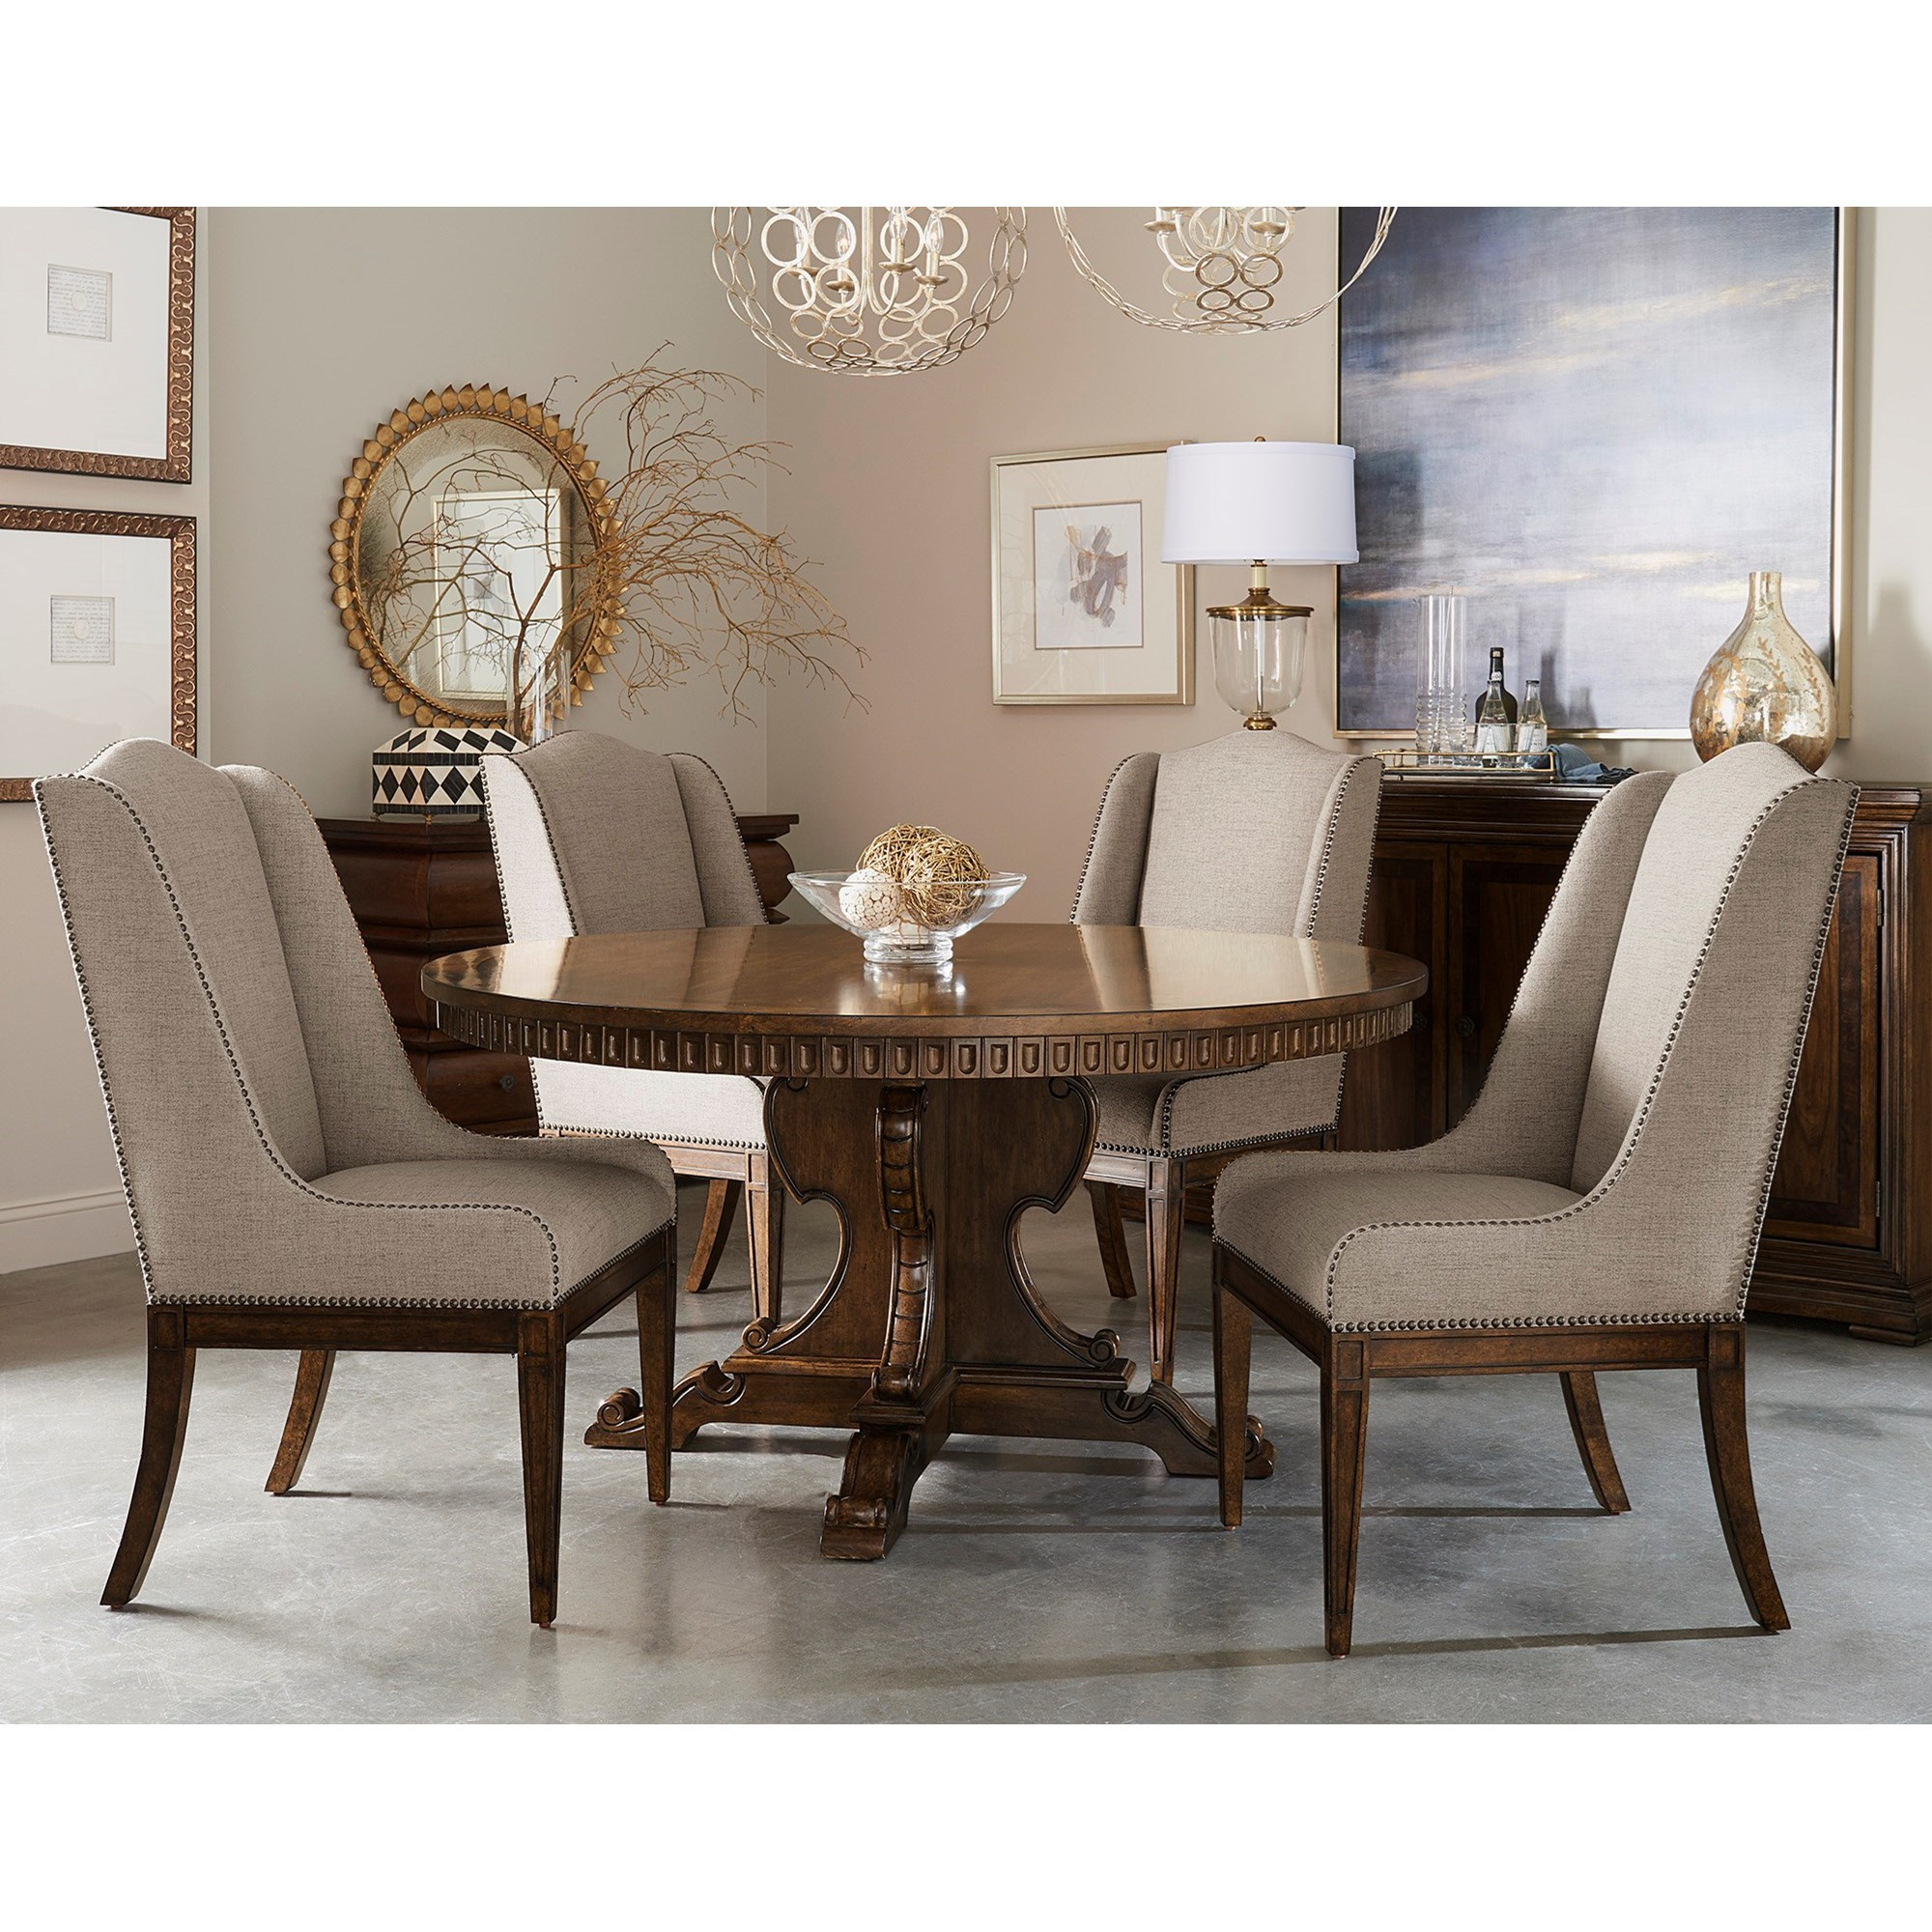 Kingsport  Five Piece Chair & Table Set by A.R.T. Furniture Inc at Home Collections Furniture